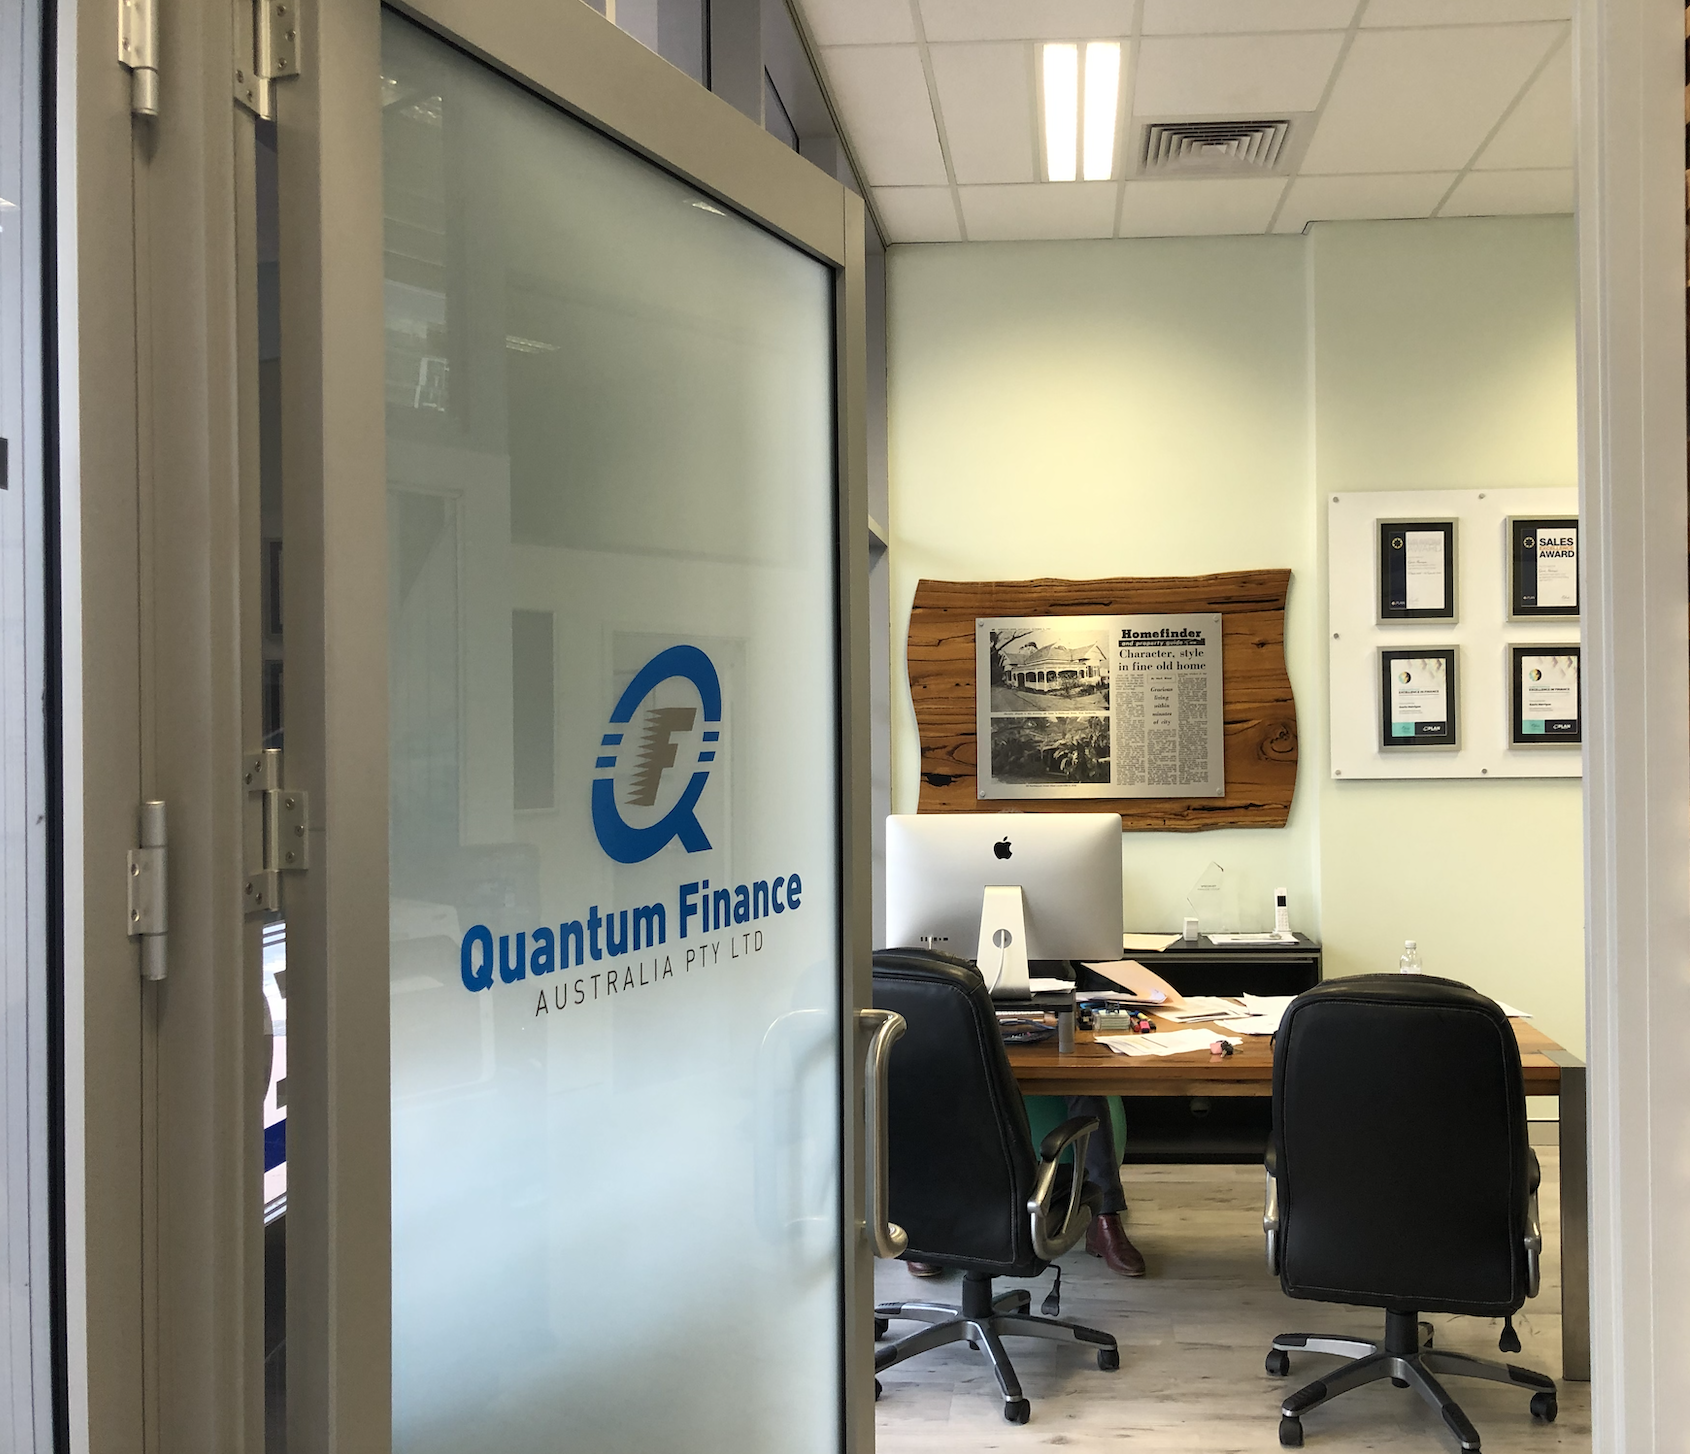 The entrance to the Quantum Finance Australia mortgage broking office.